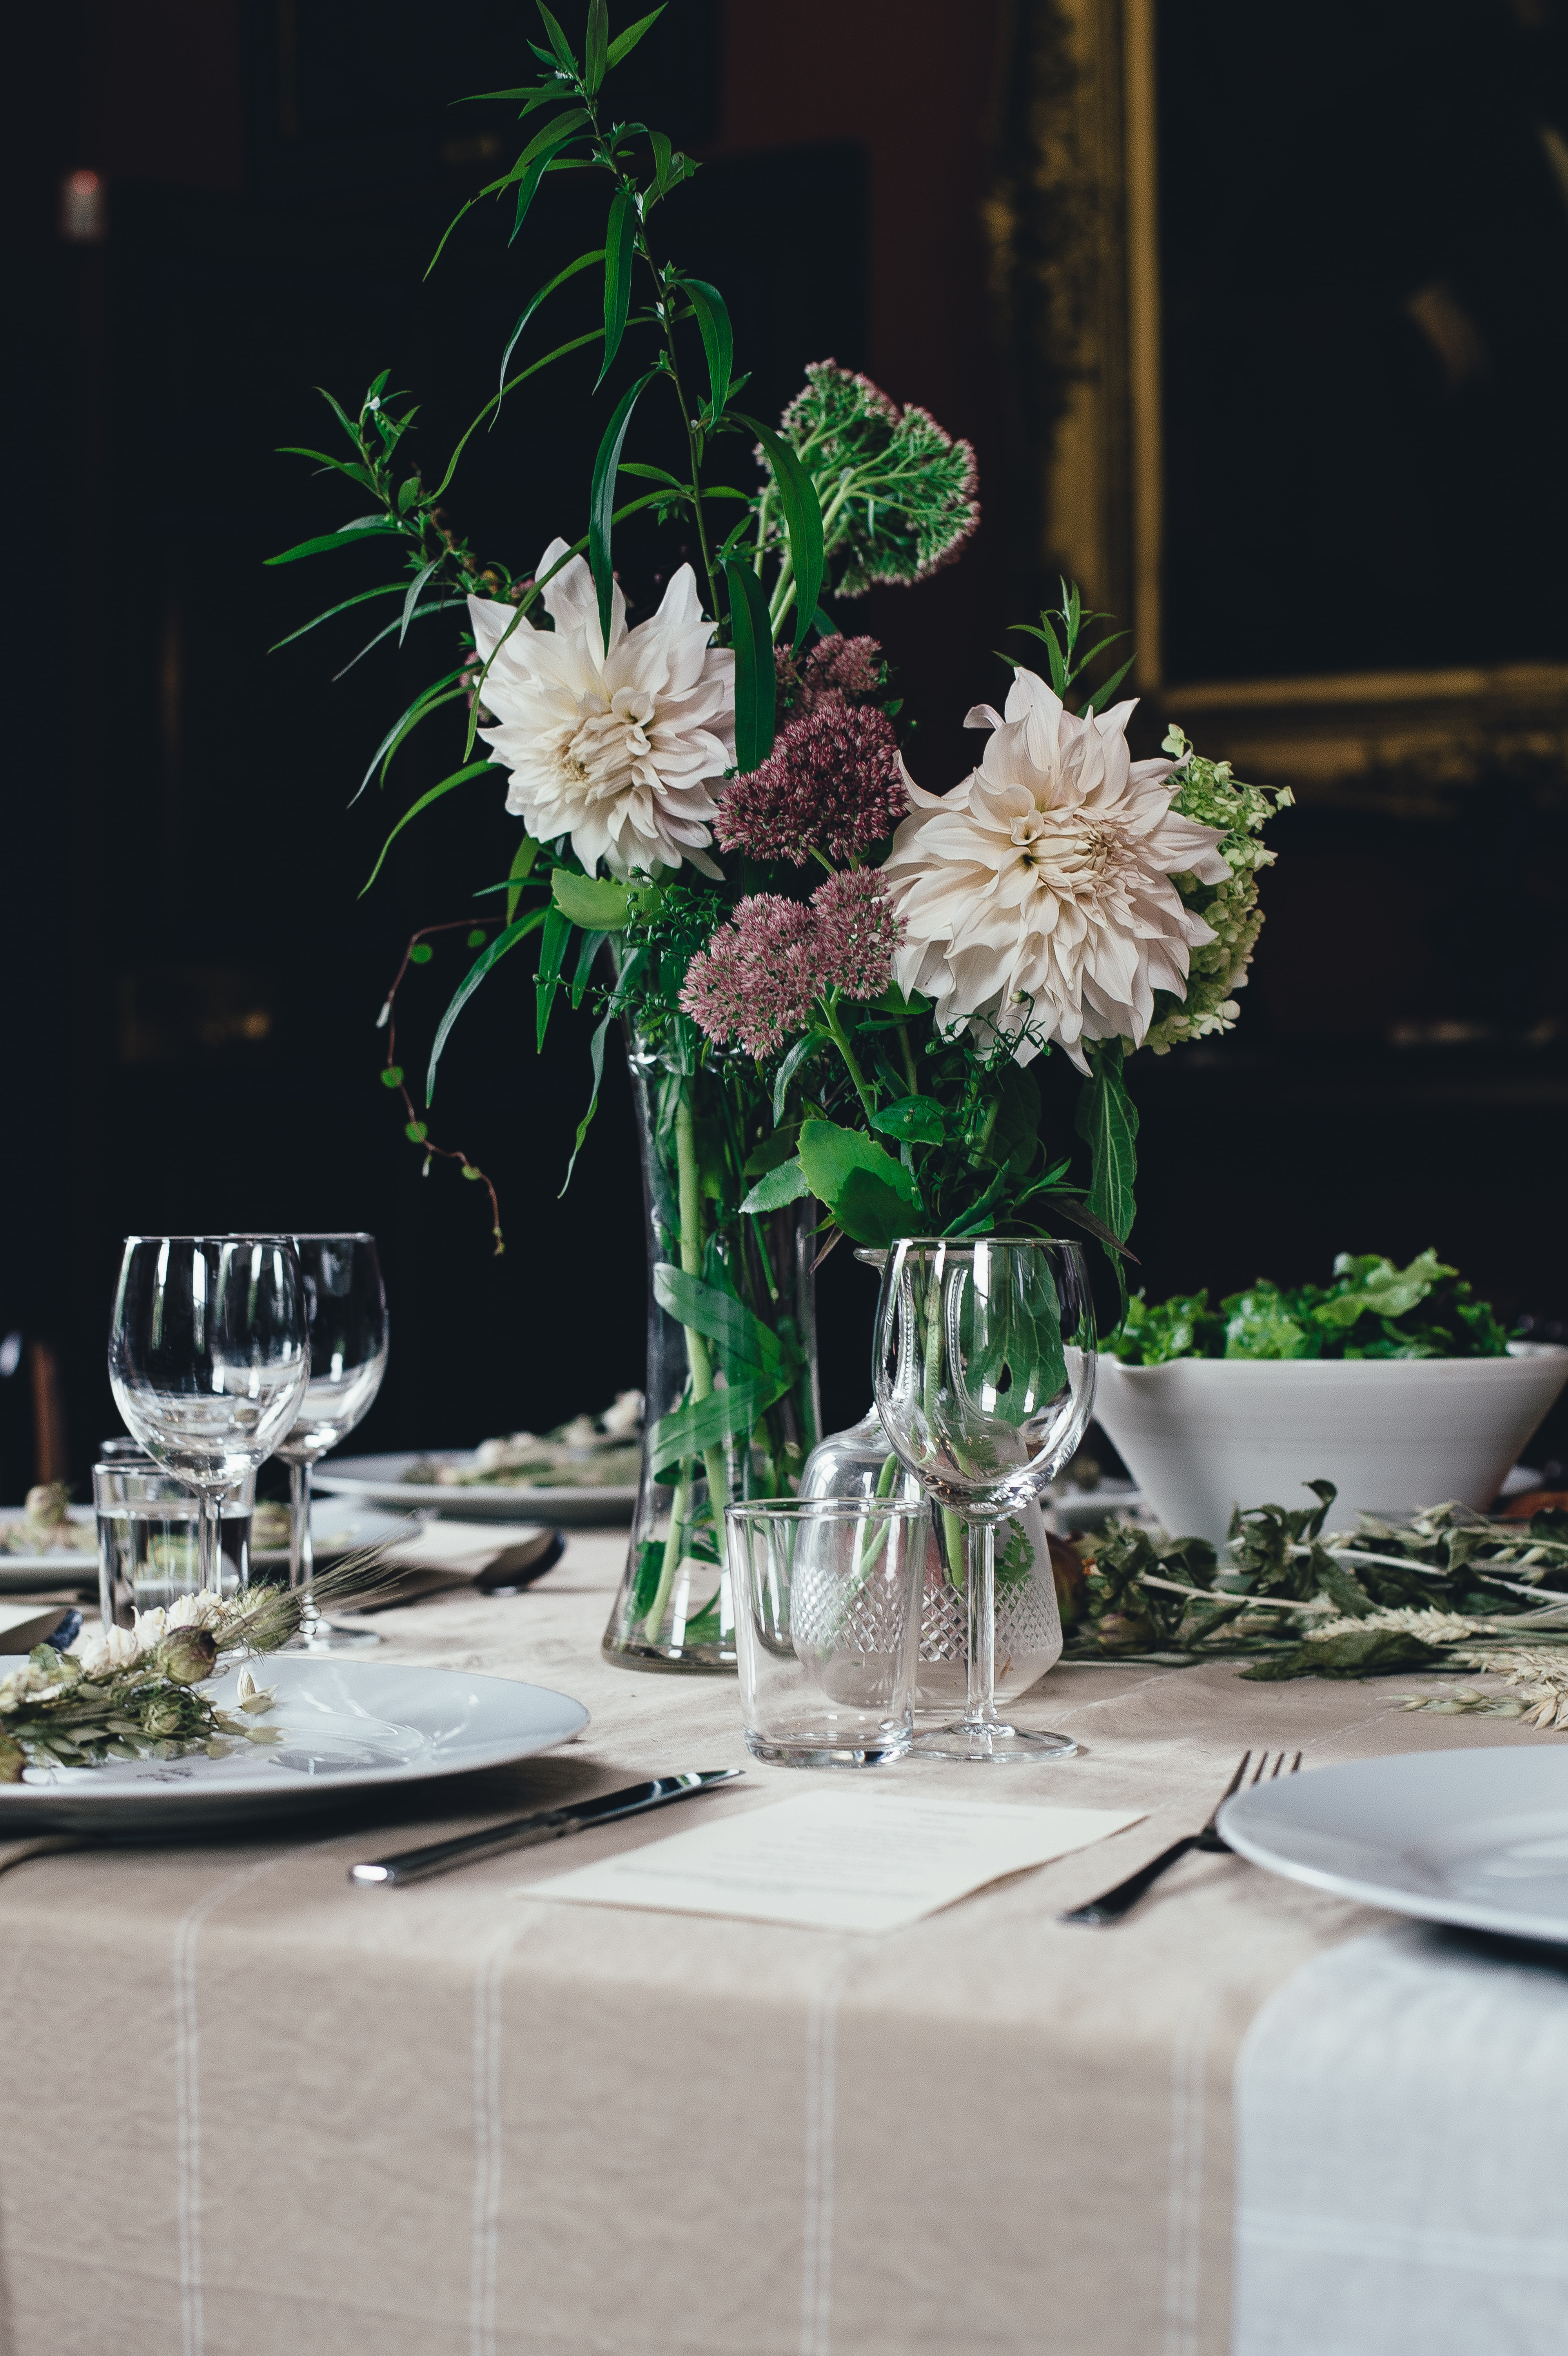 A set table with flowers in vases, empty plates and wine glasses